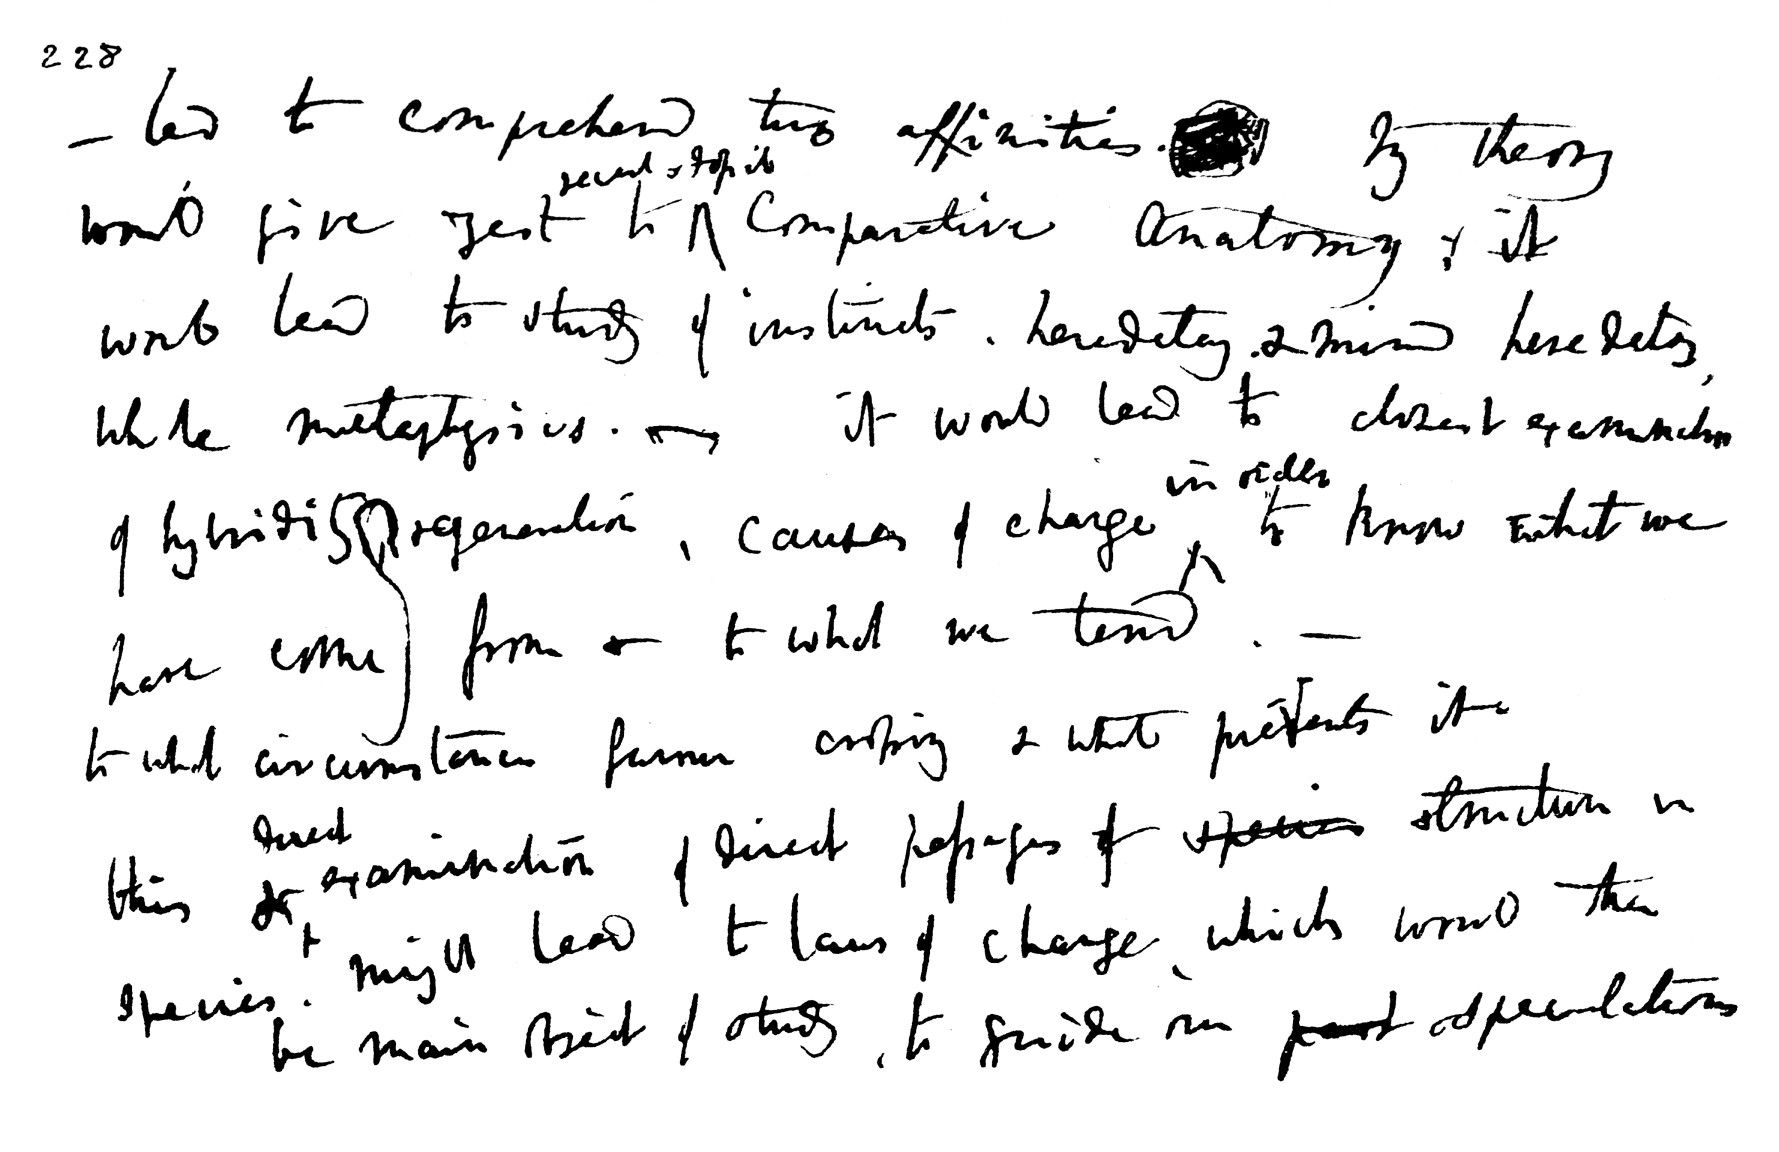 Charles Darwin Kept His Thoughts In Notebooks